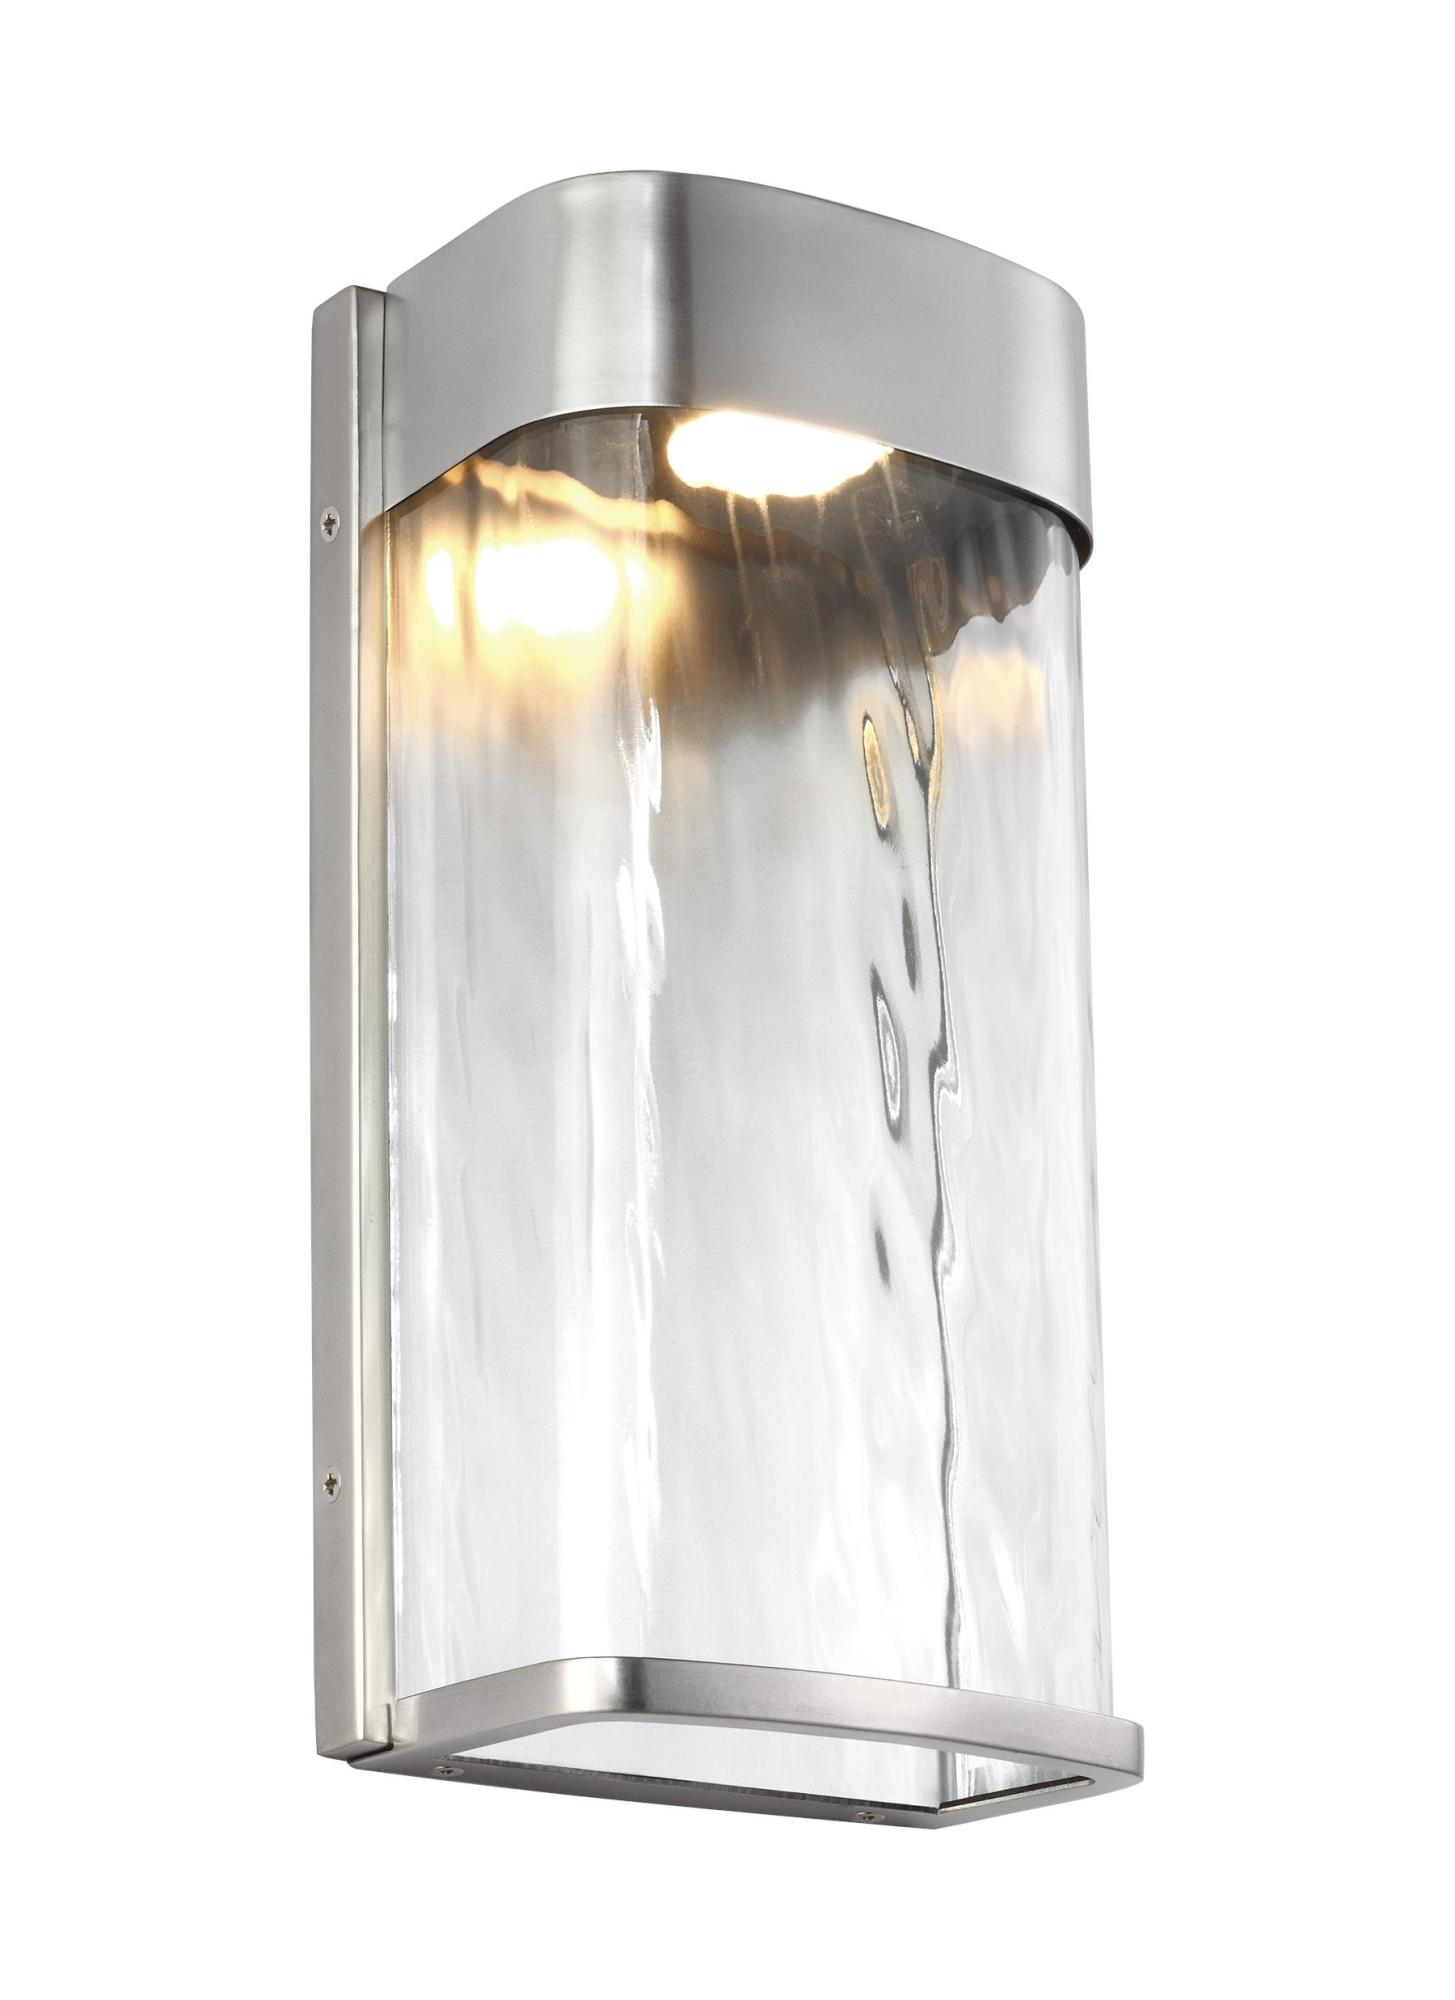 Details About Feiss Ol14101 L1 Bennie Single Light 12 Tall Integrated Led Outdoor Wall Sconce